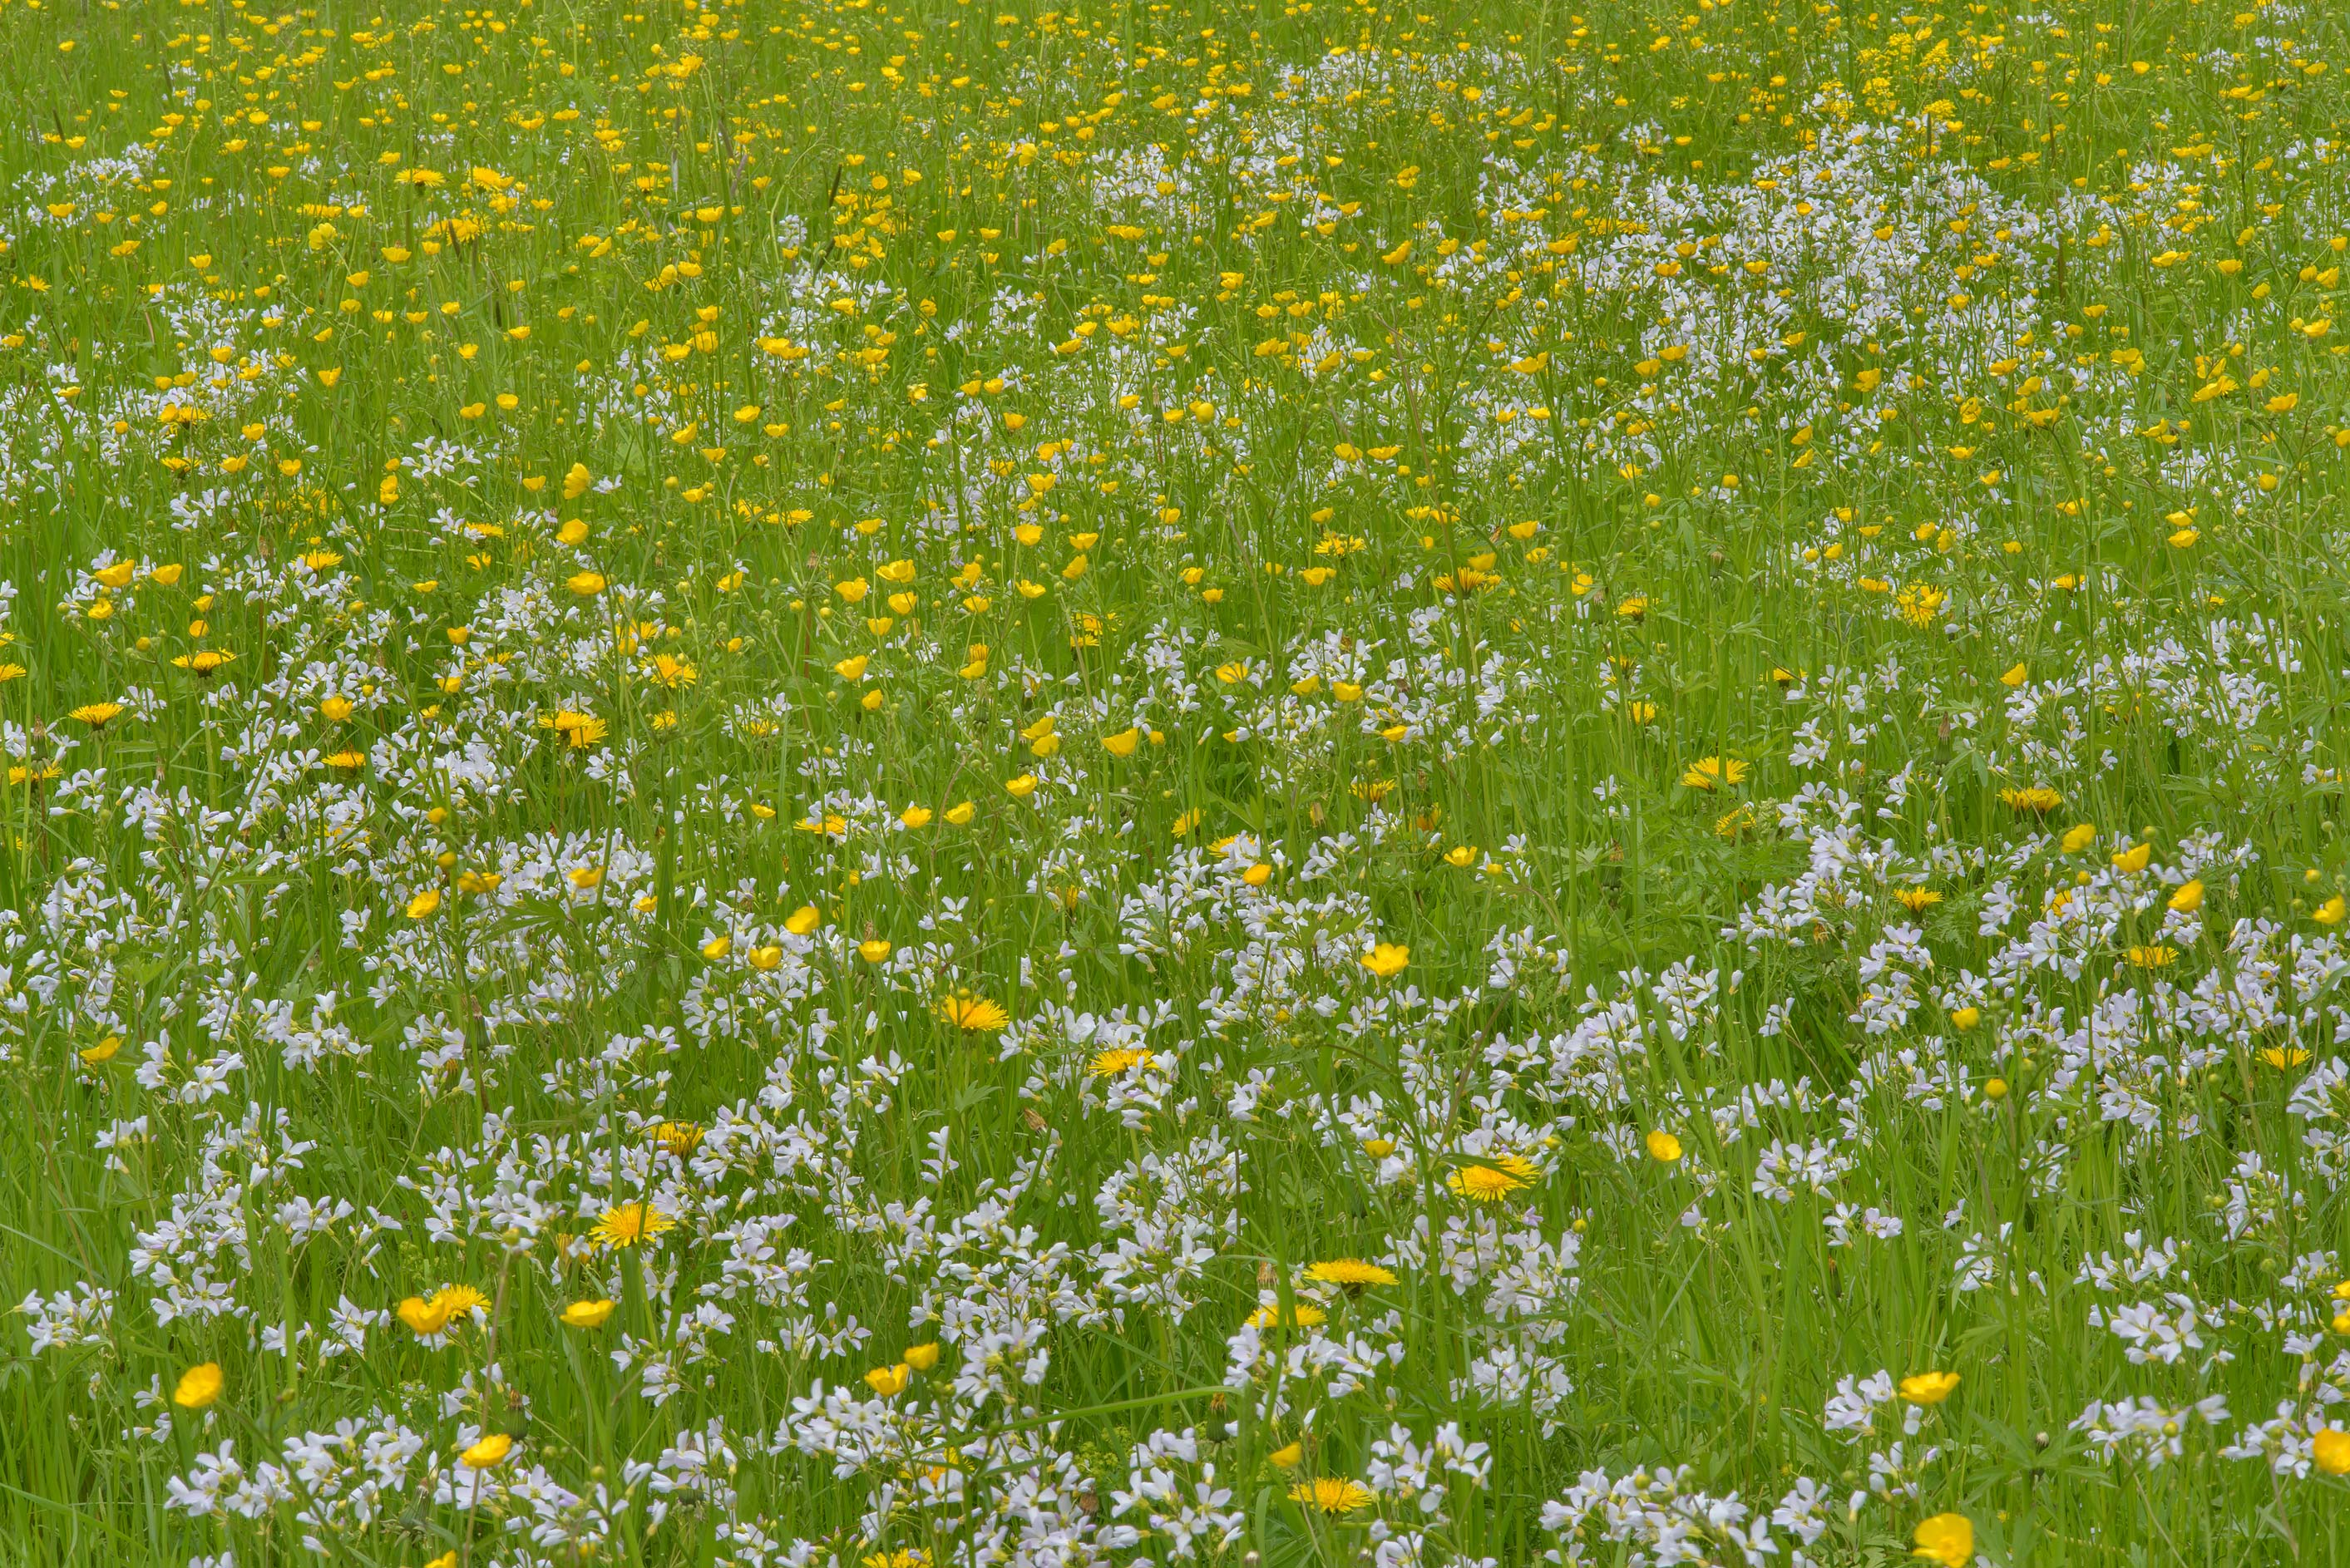 Green lawn with spring cress and dandelions in...Institute. St.Petersburg, Russia